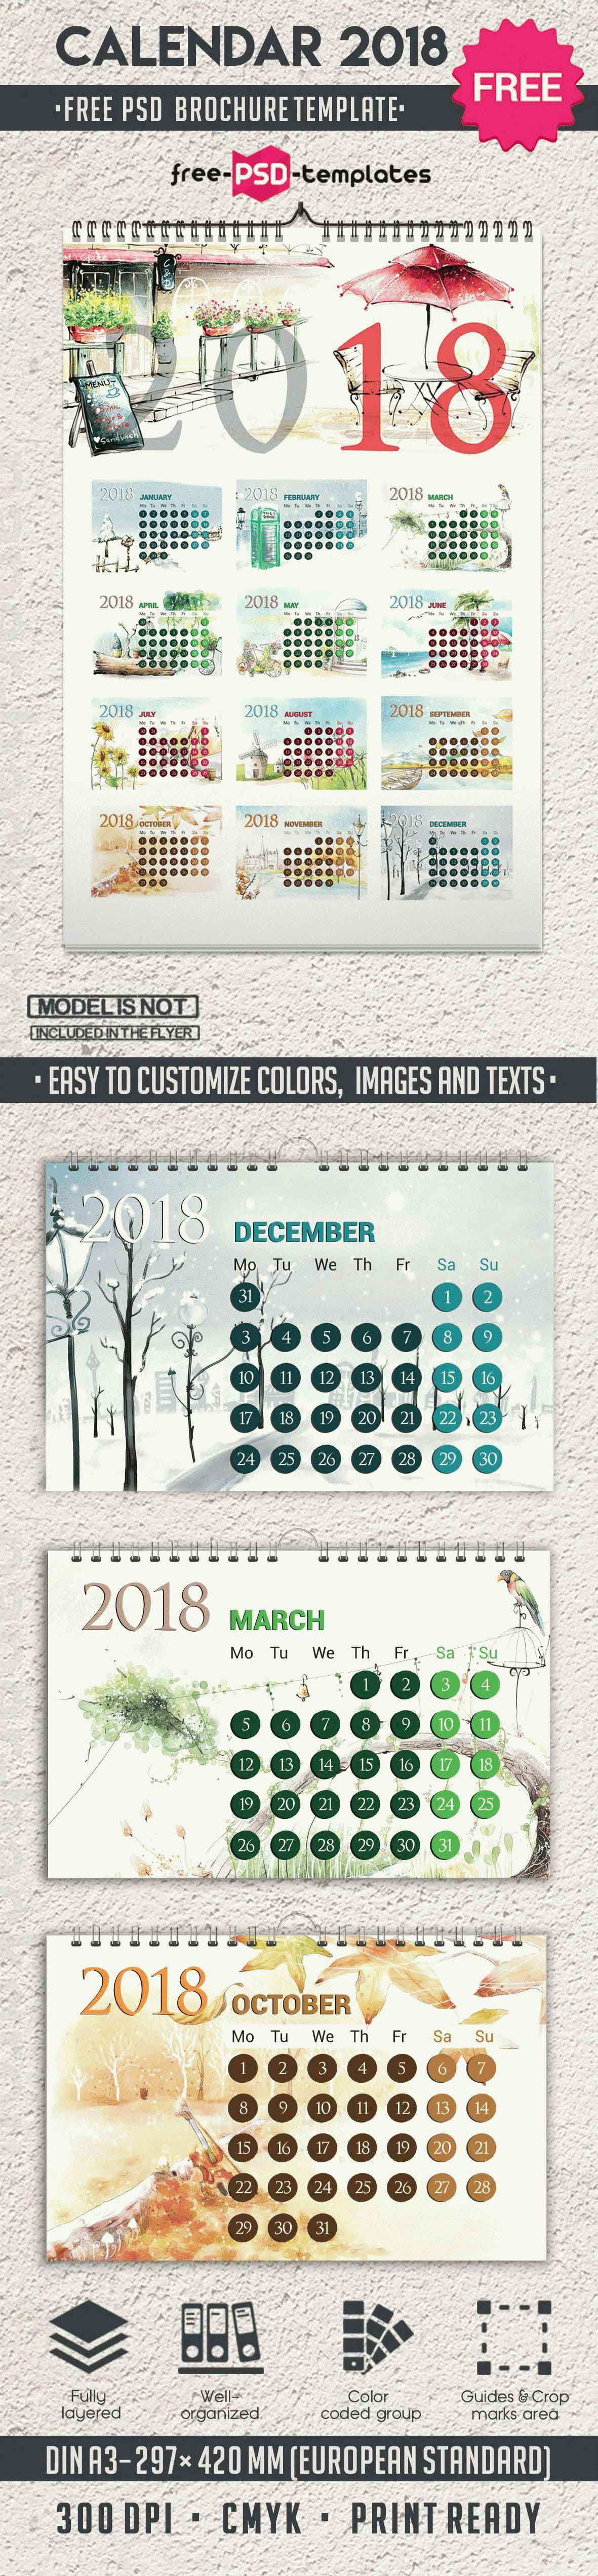 """Download Free """"Calendar"""" now Many Free """"calendar"""" on our website"""